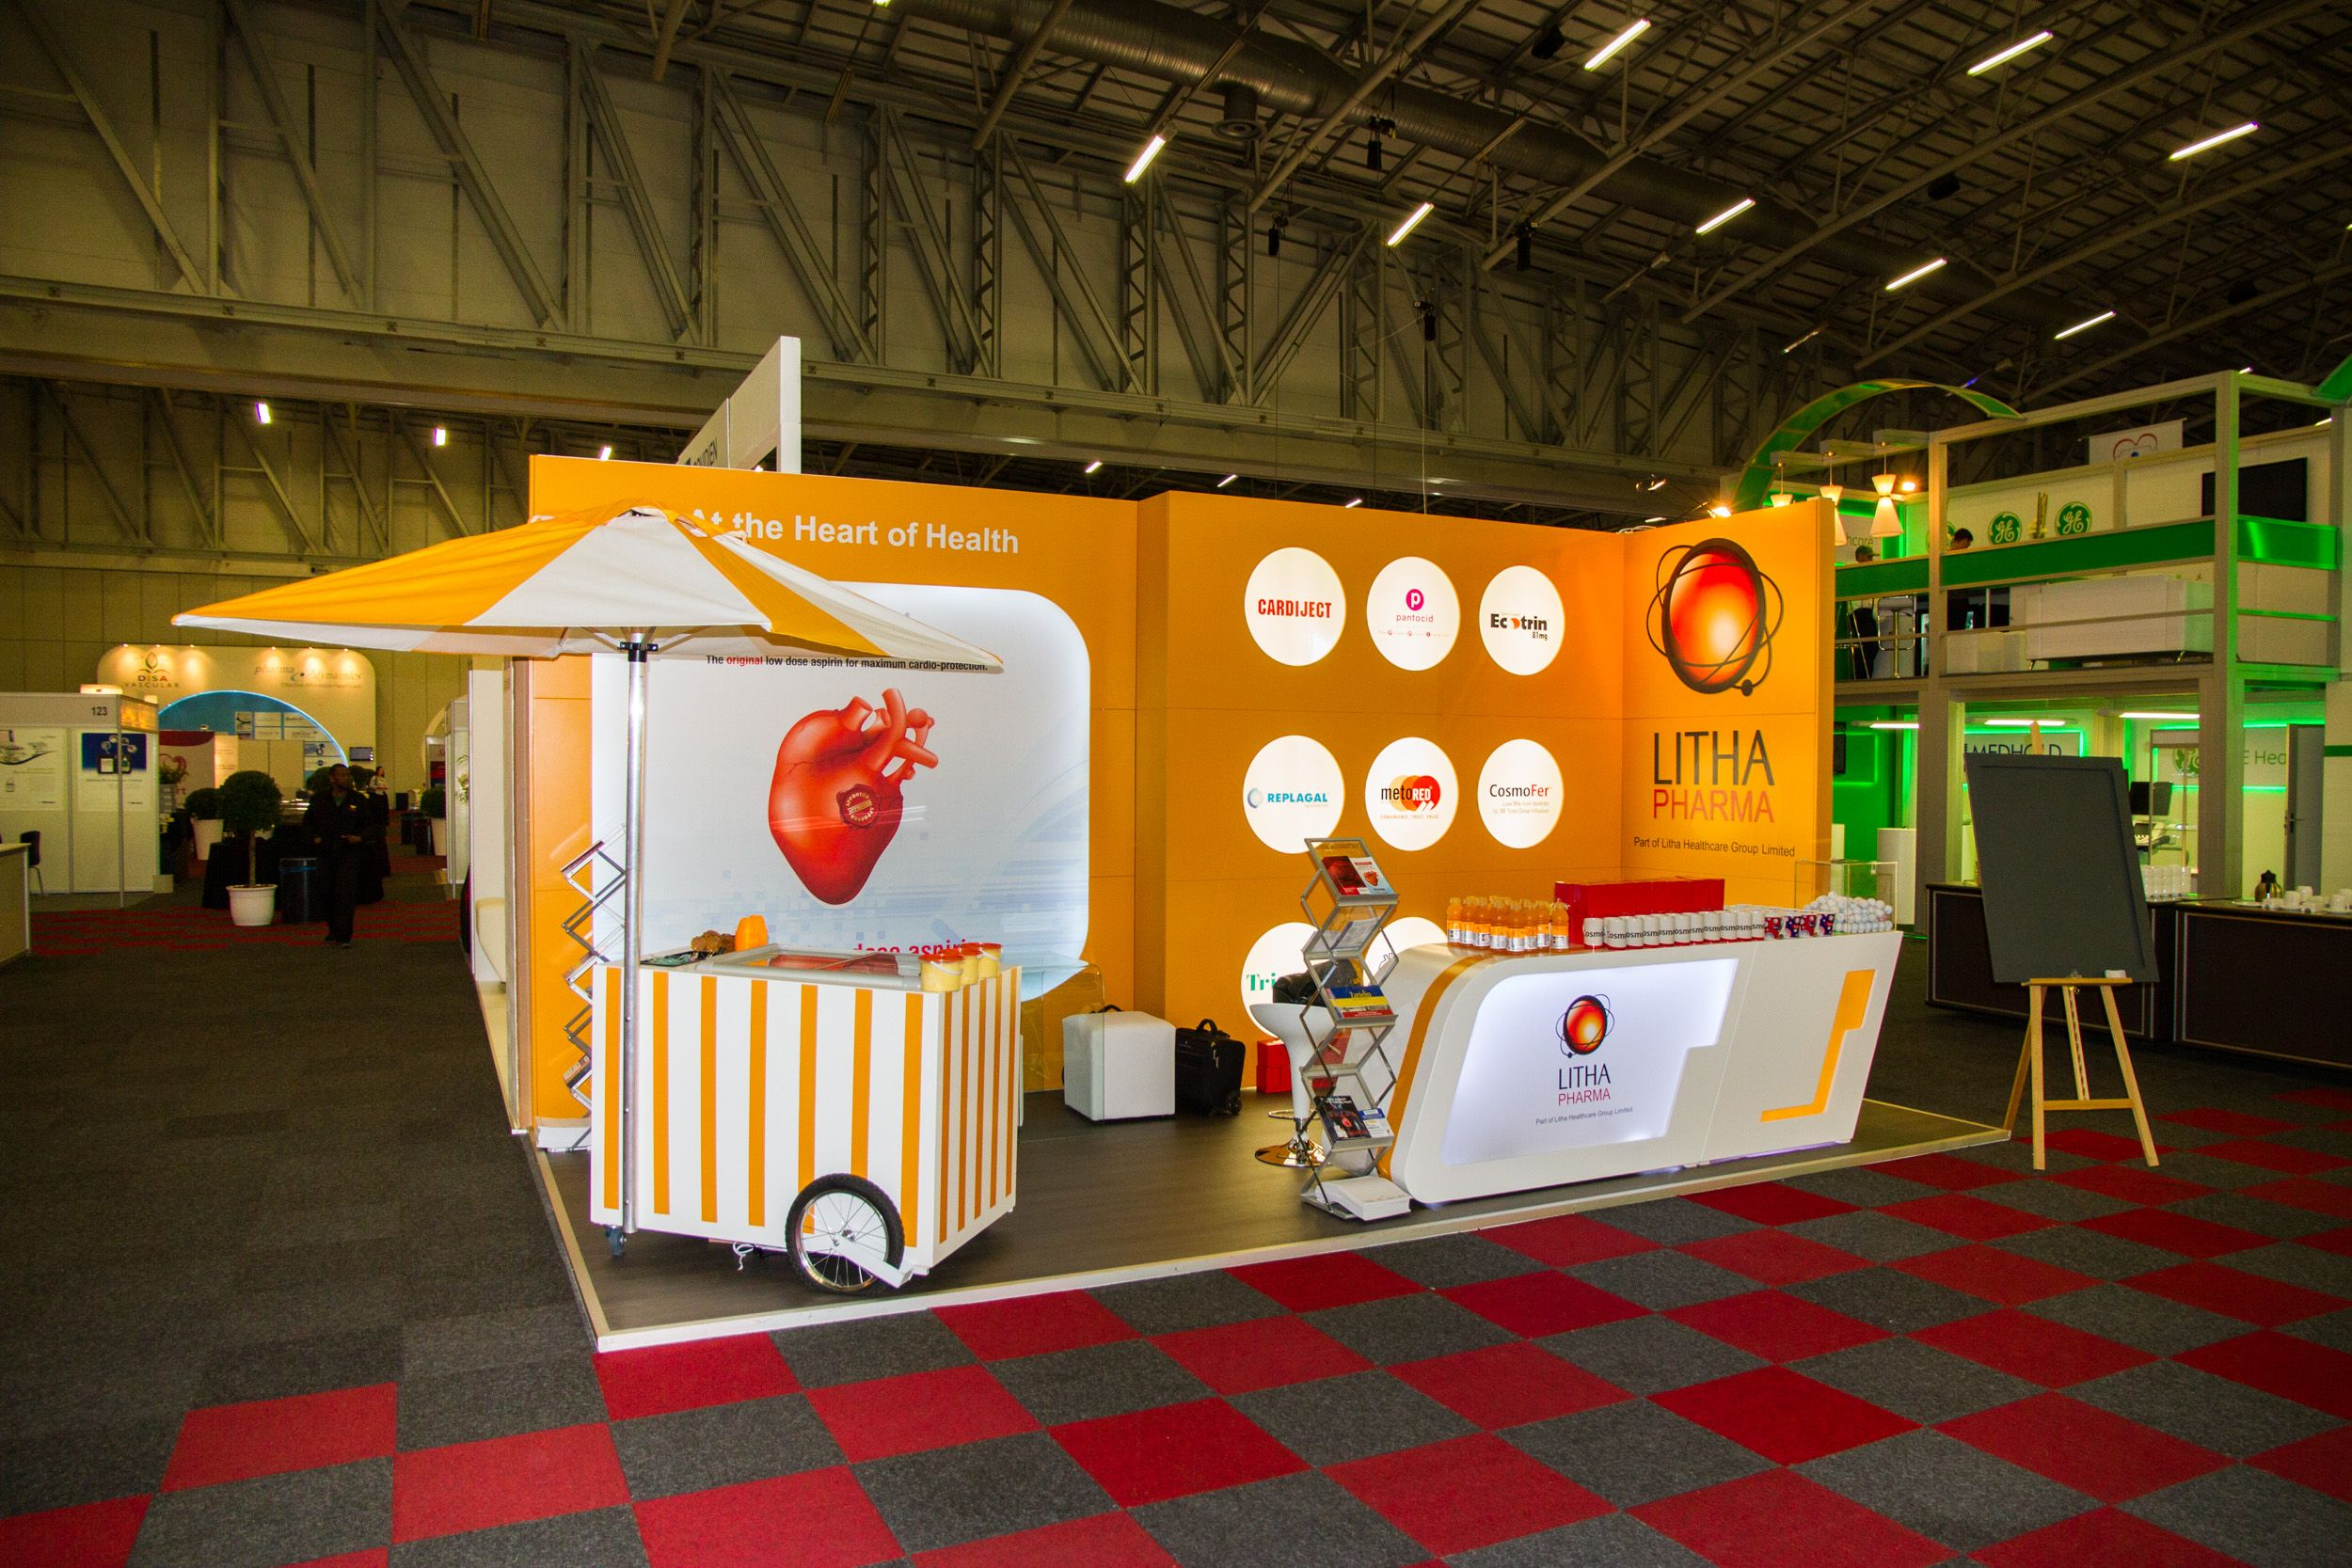 Expo Stands Cape Town : Litha pharma 6th world paediatric cardiology congress cape town